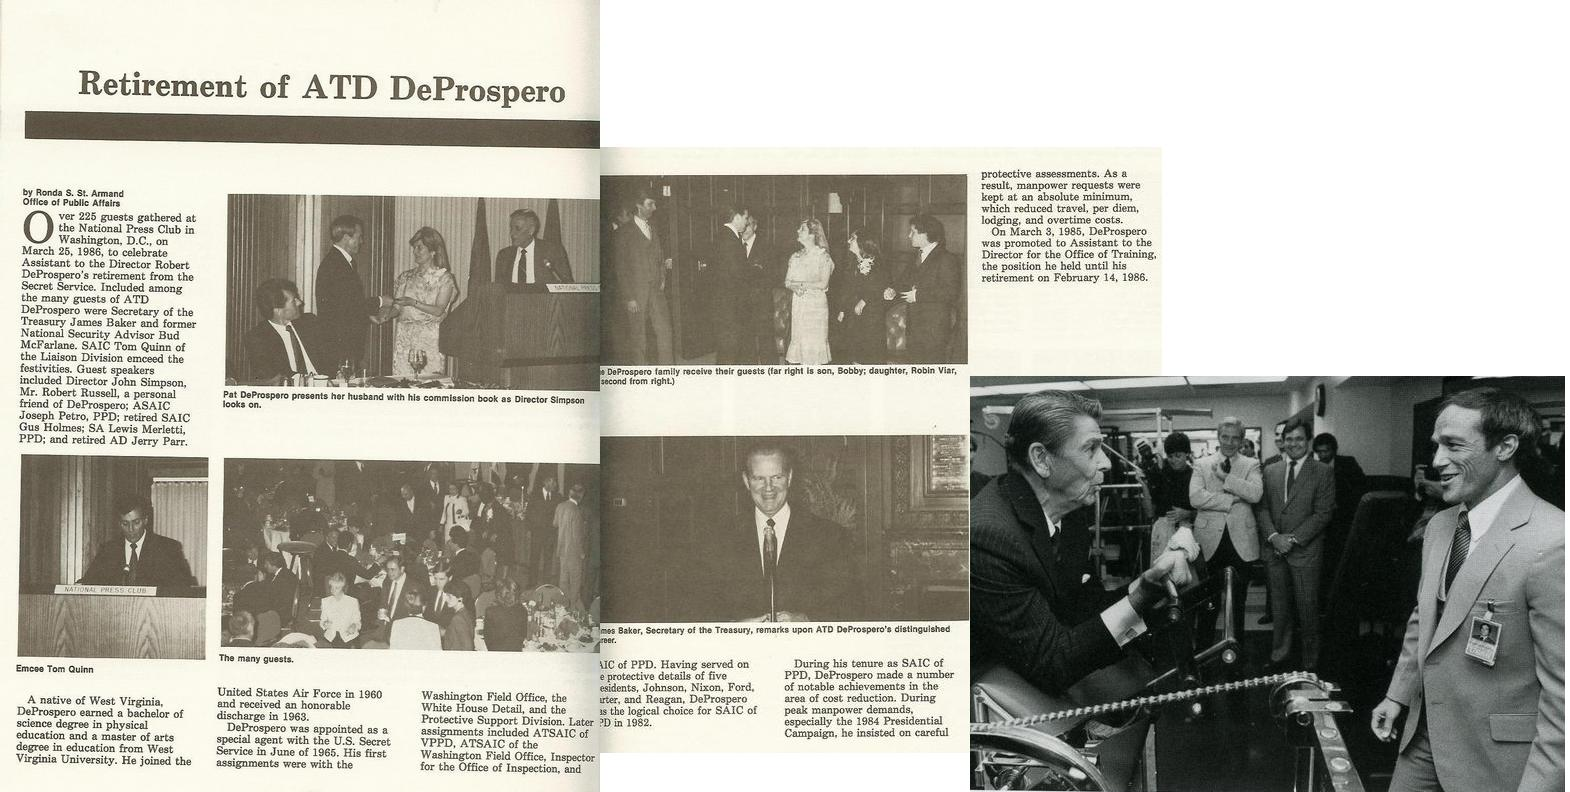 Robert DeProspero: in the Secret Service 1965-1986